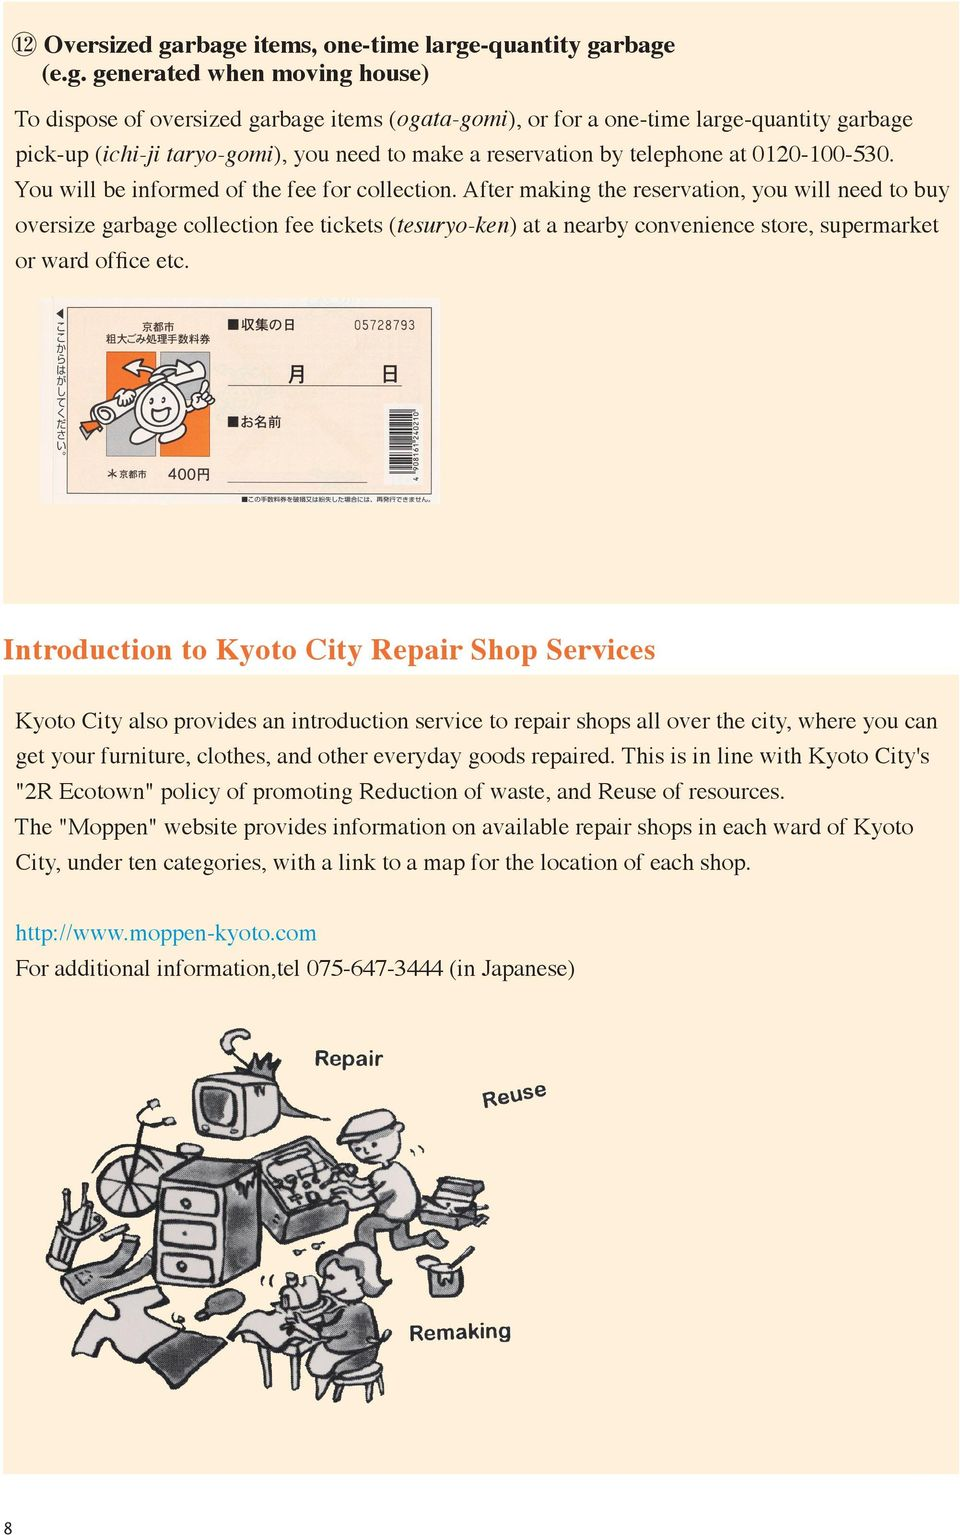 How to Reduce Waste, Recycle and Dispose of Garbage in Kyoto City - PDF